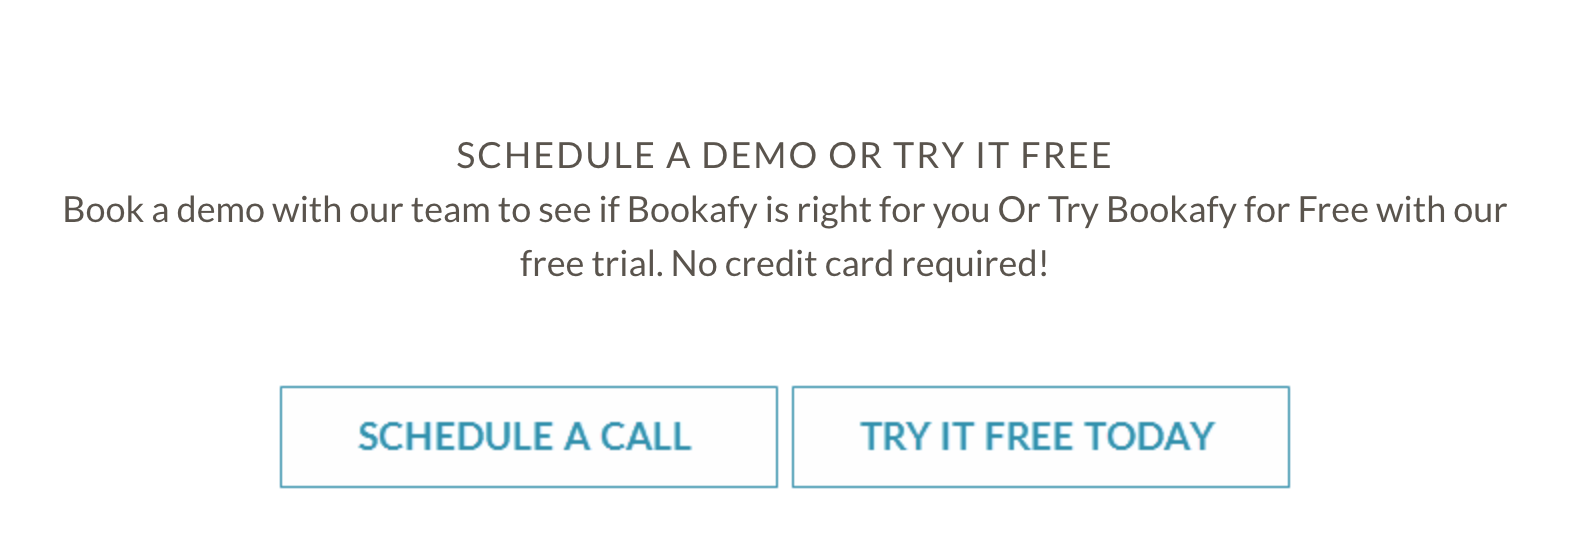 Lifetime Access to Bookafy